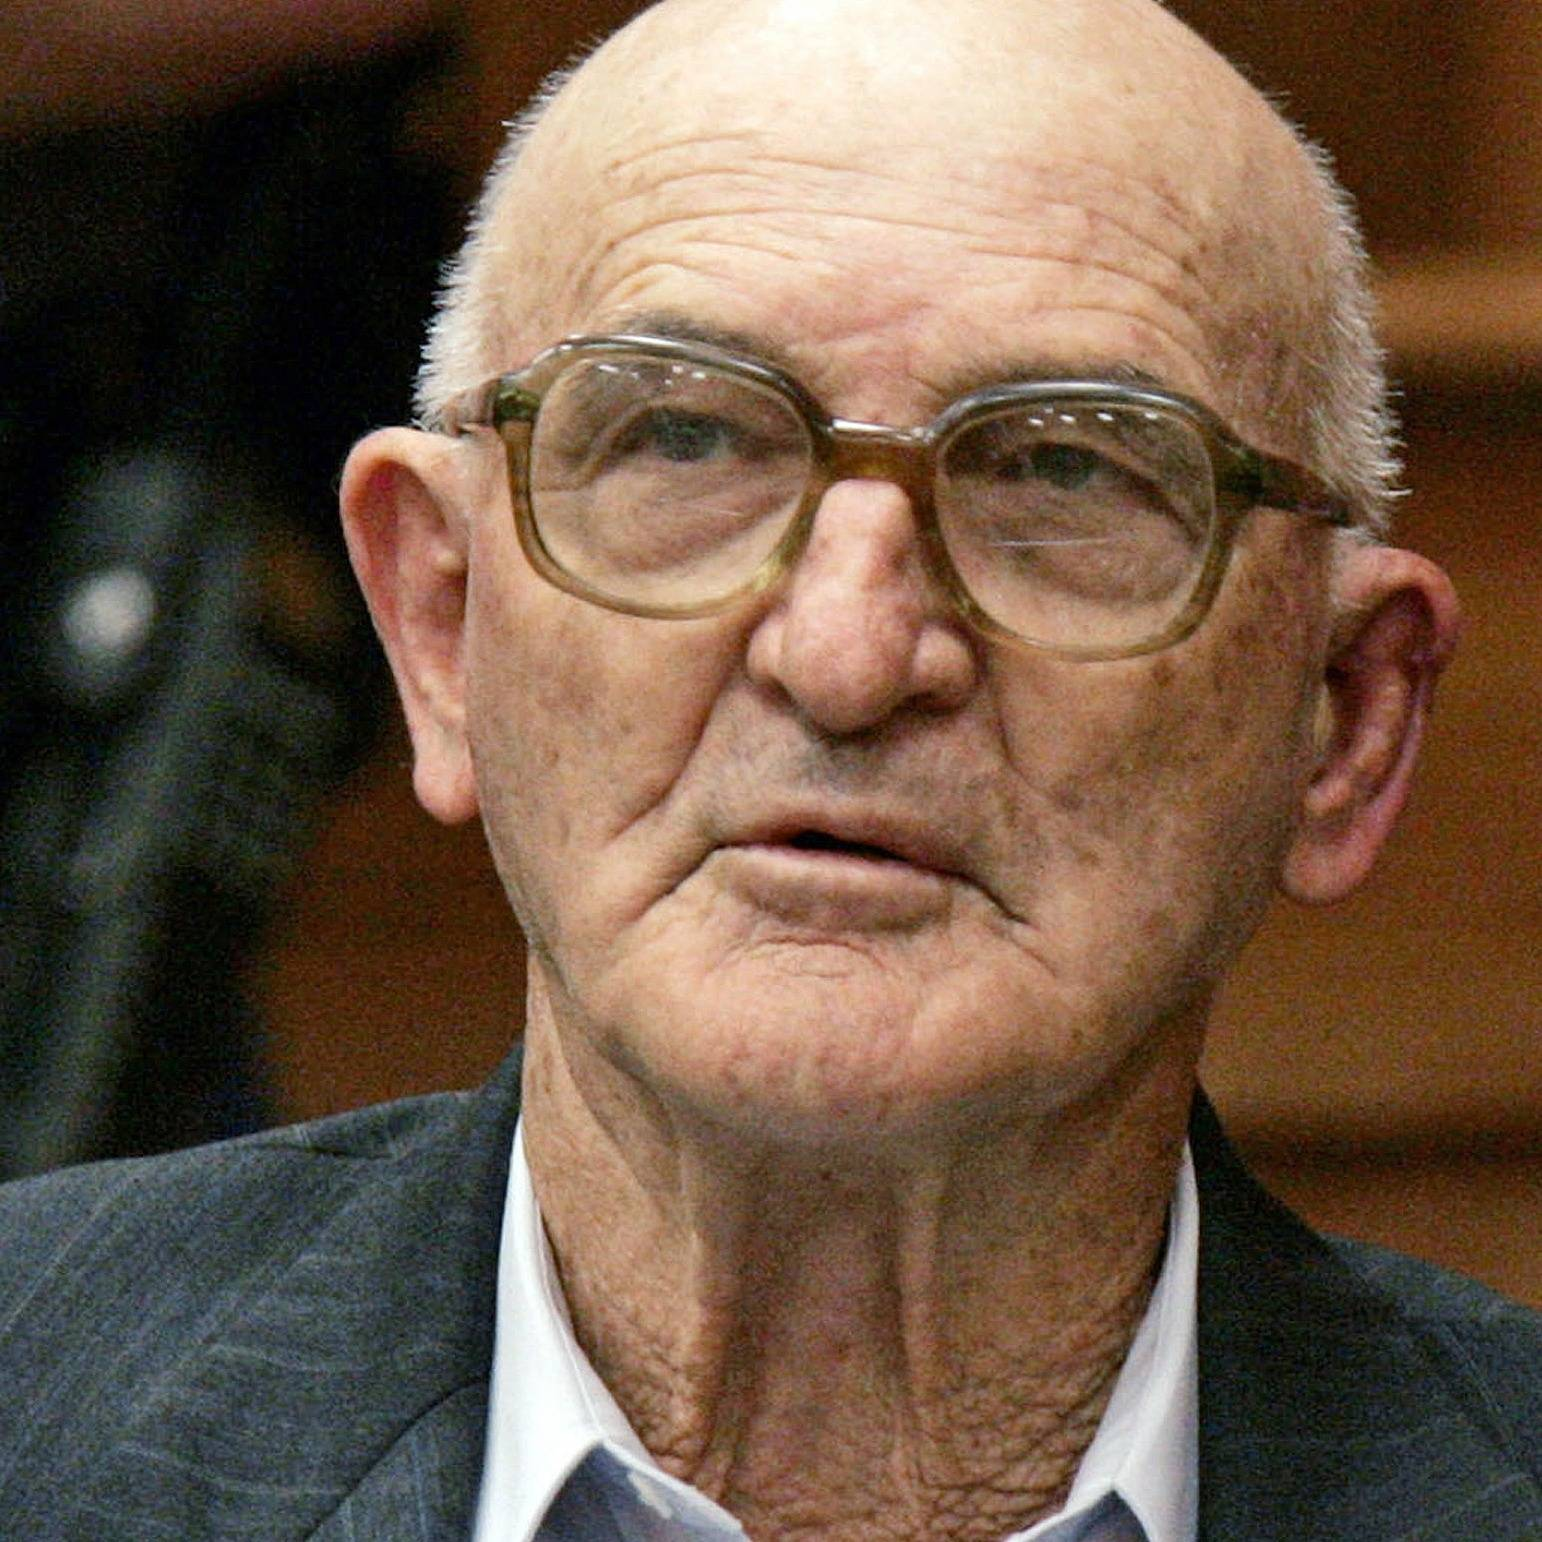 KKK leader Killen dies in prison at 92